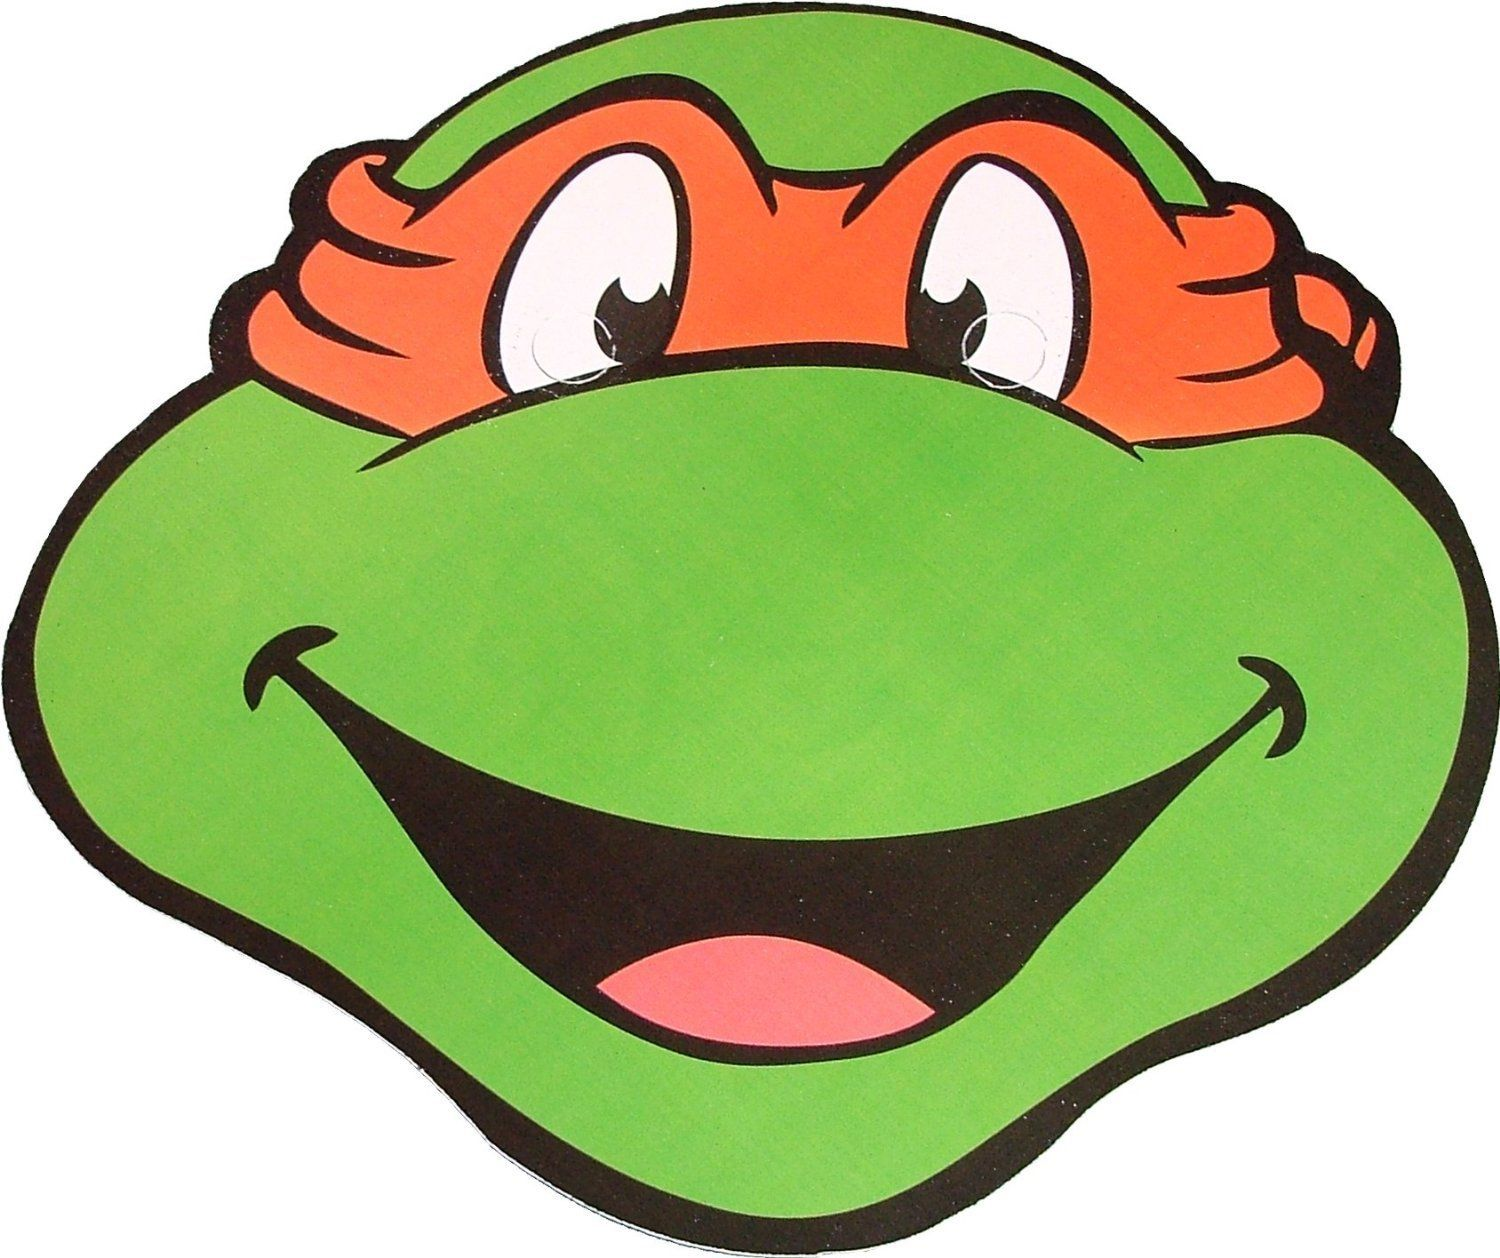 ninja turtles face pictures free cliparts that you can download to rh pinterest com